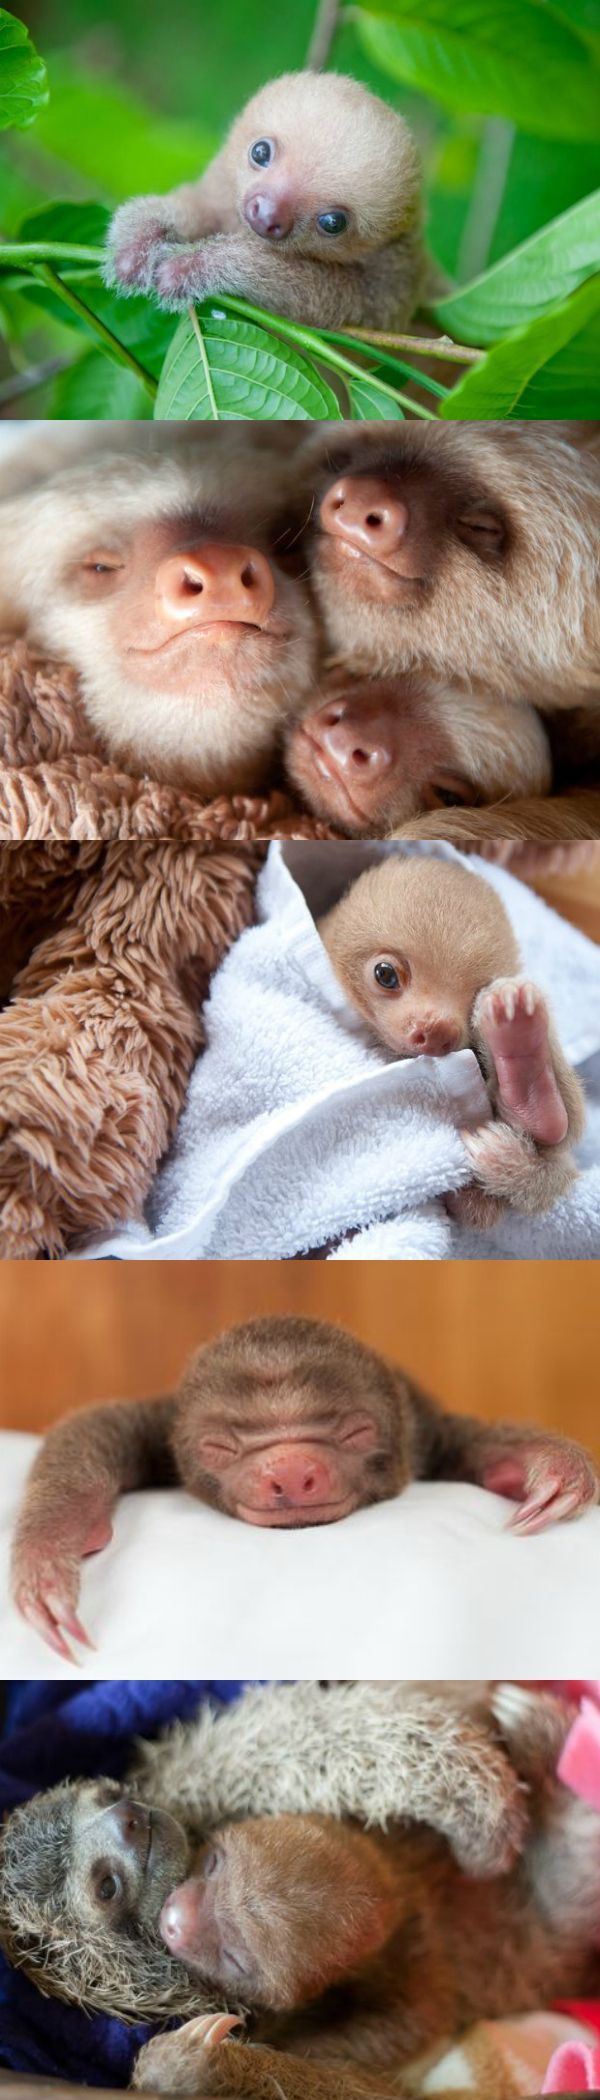 Best Sloths Images On Pinterest Toed Sloth Adorable - 5 month old baby and sloth are the most unlikely of best friends